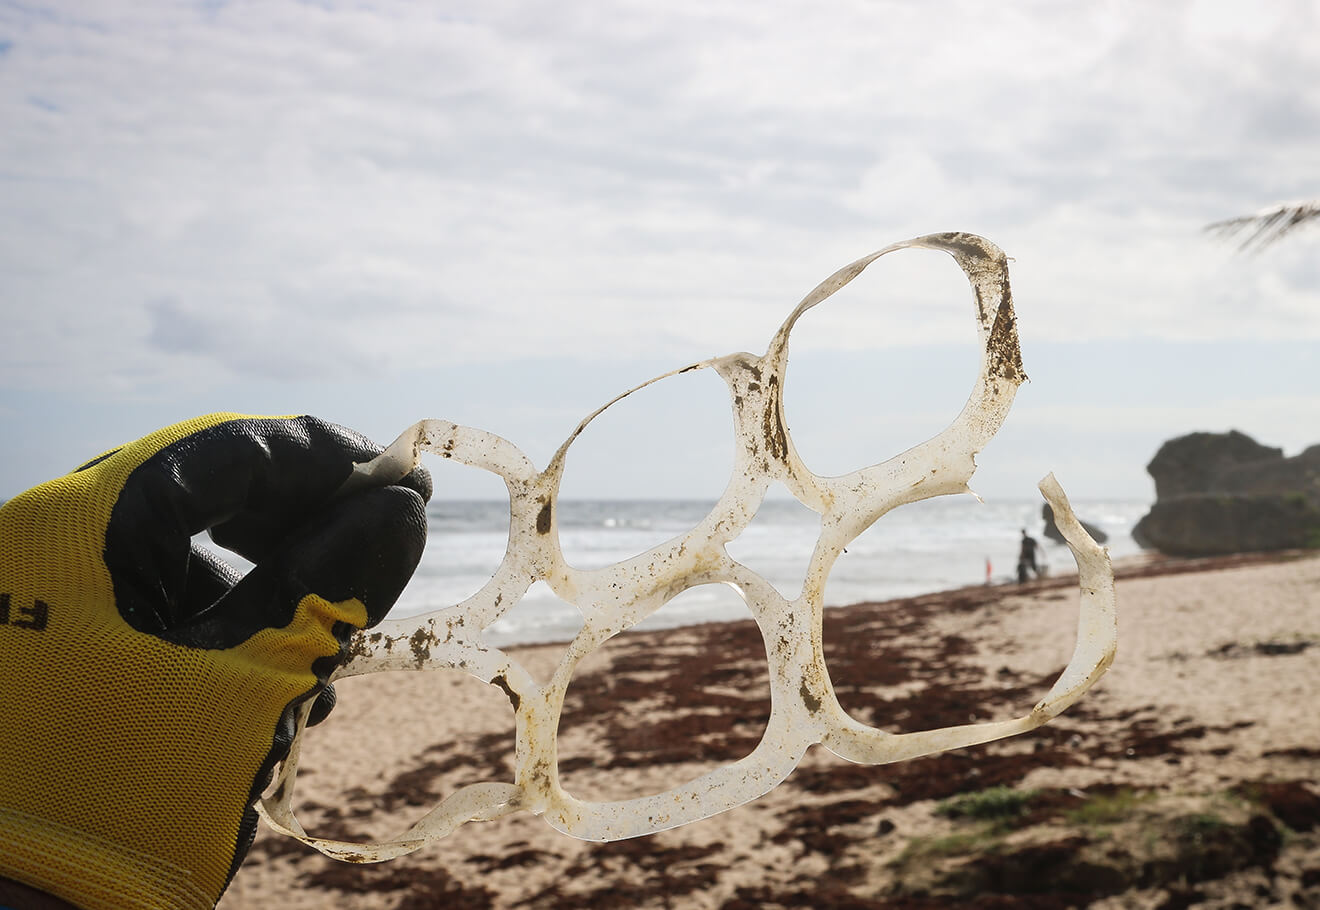 Six pack rings found during beach clean up